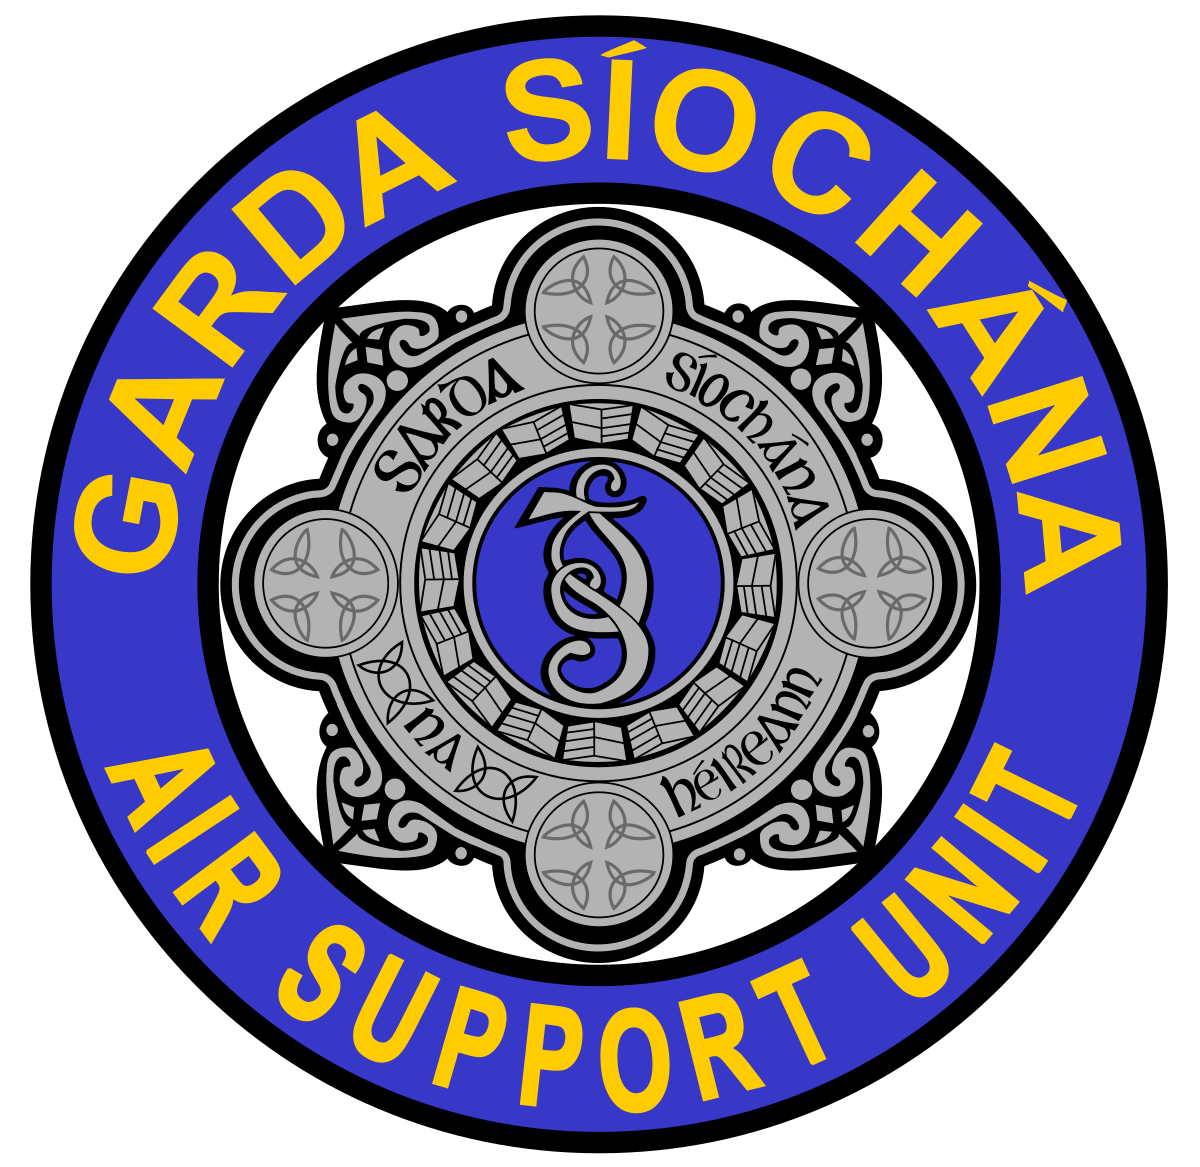 Garda Air Support Unit.